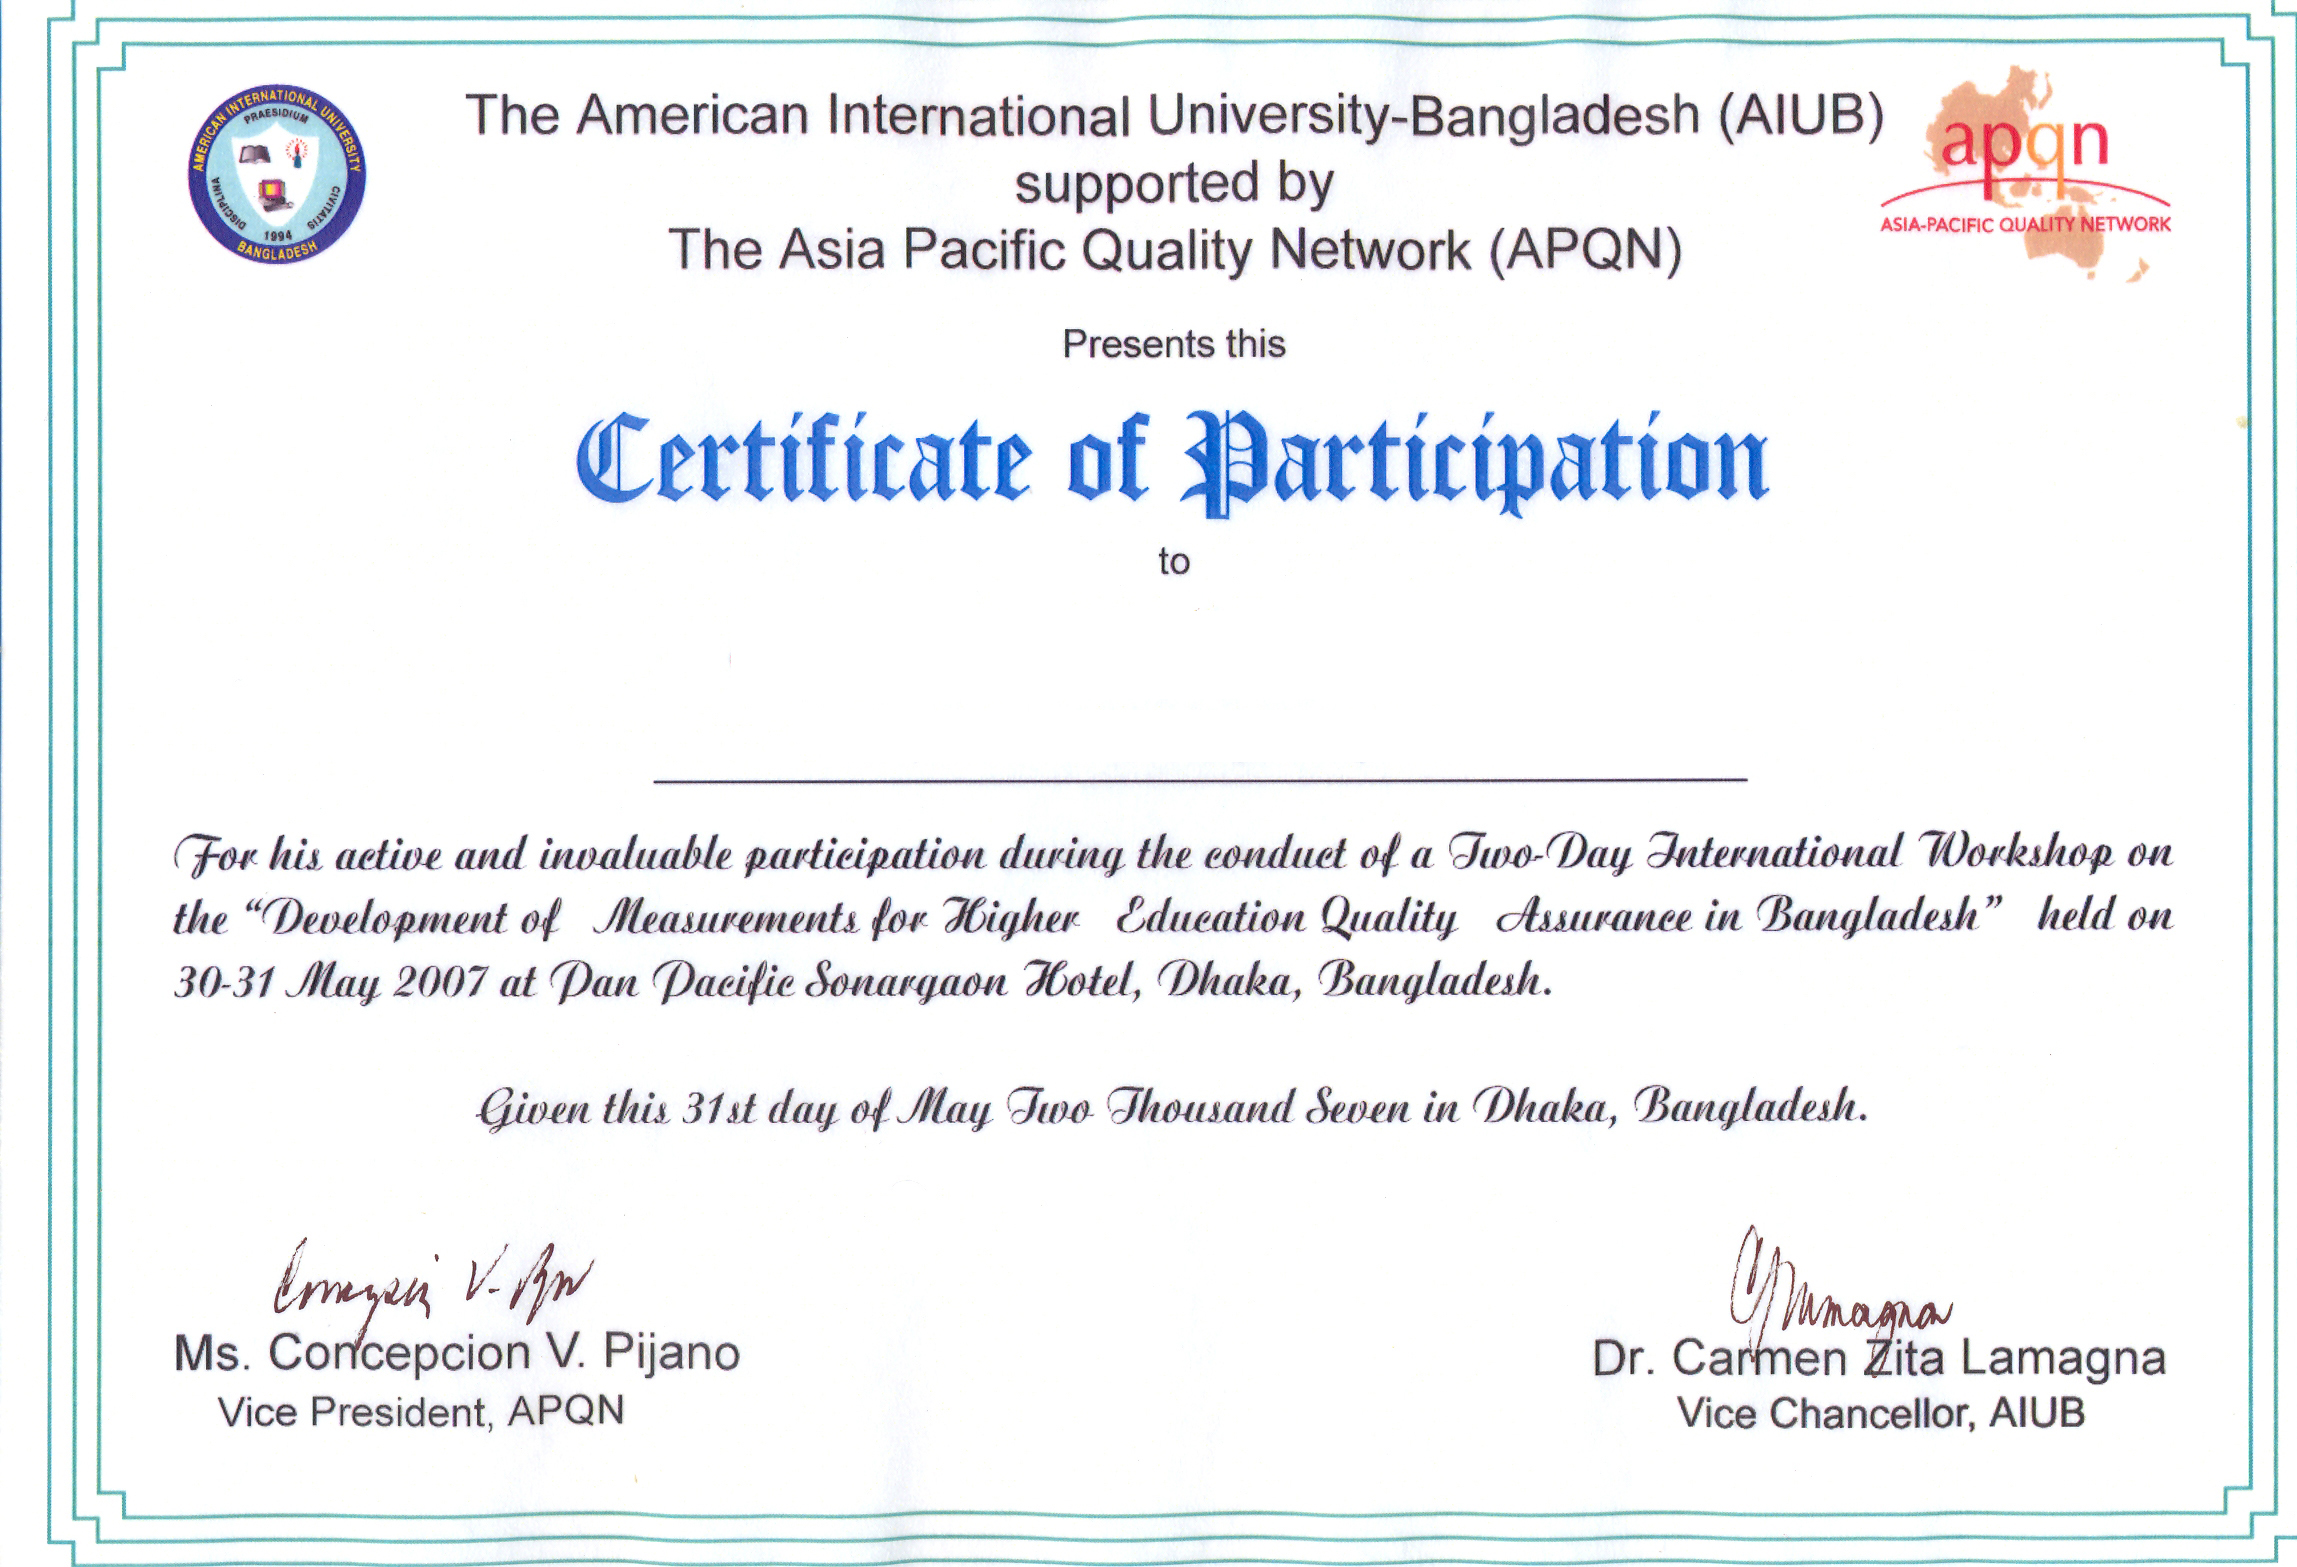 AIUB and APQN JOINTLY ORGANIZED INTERNATIONAL WORKSHOP  American International University